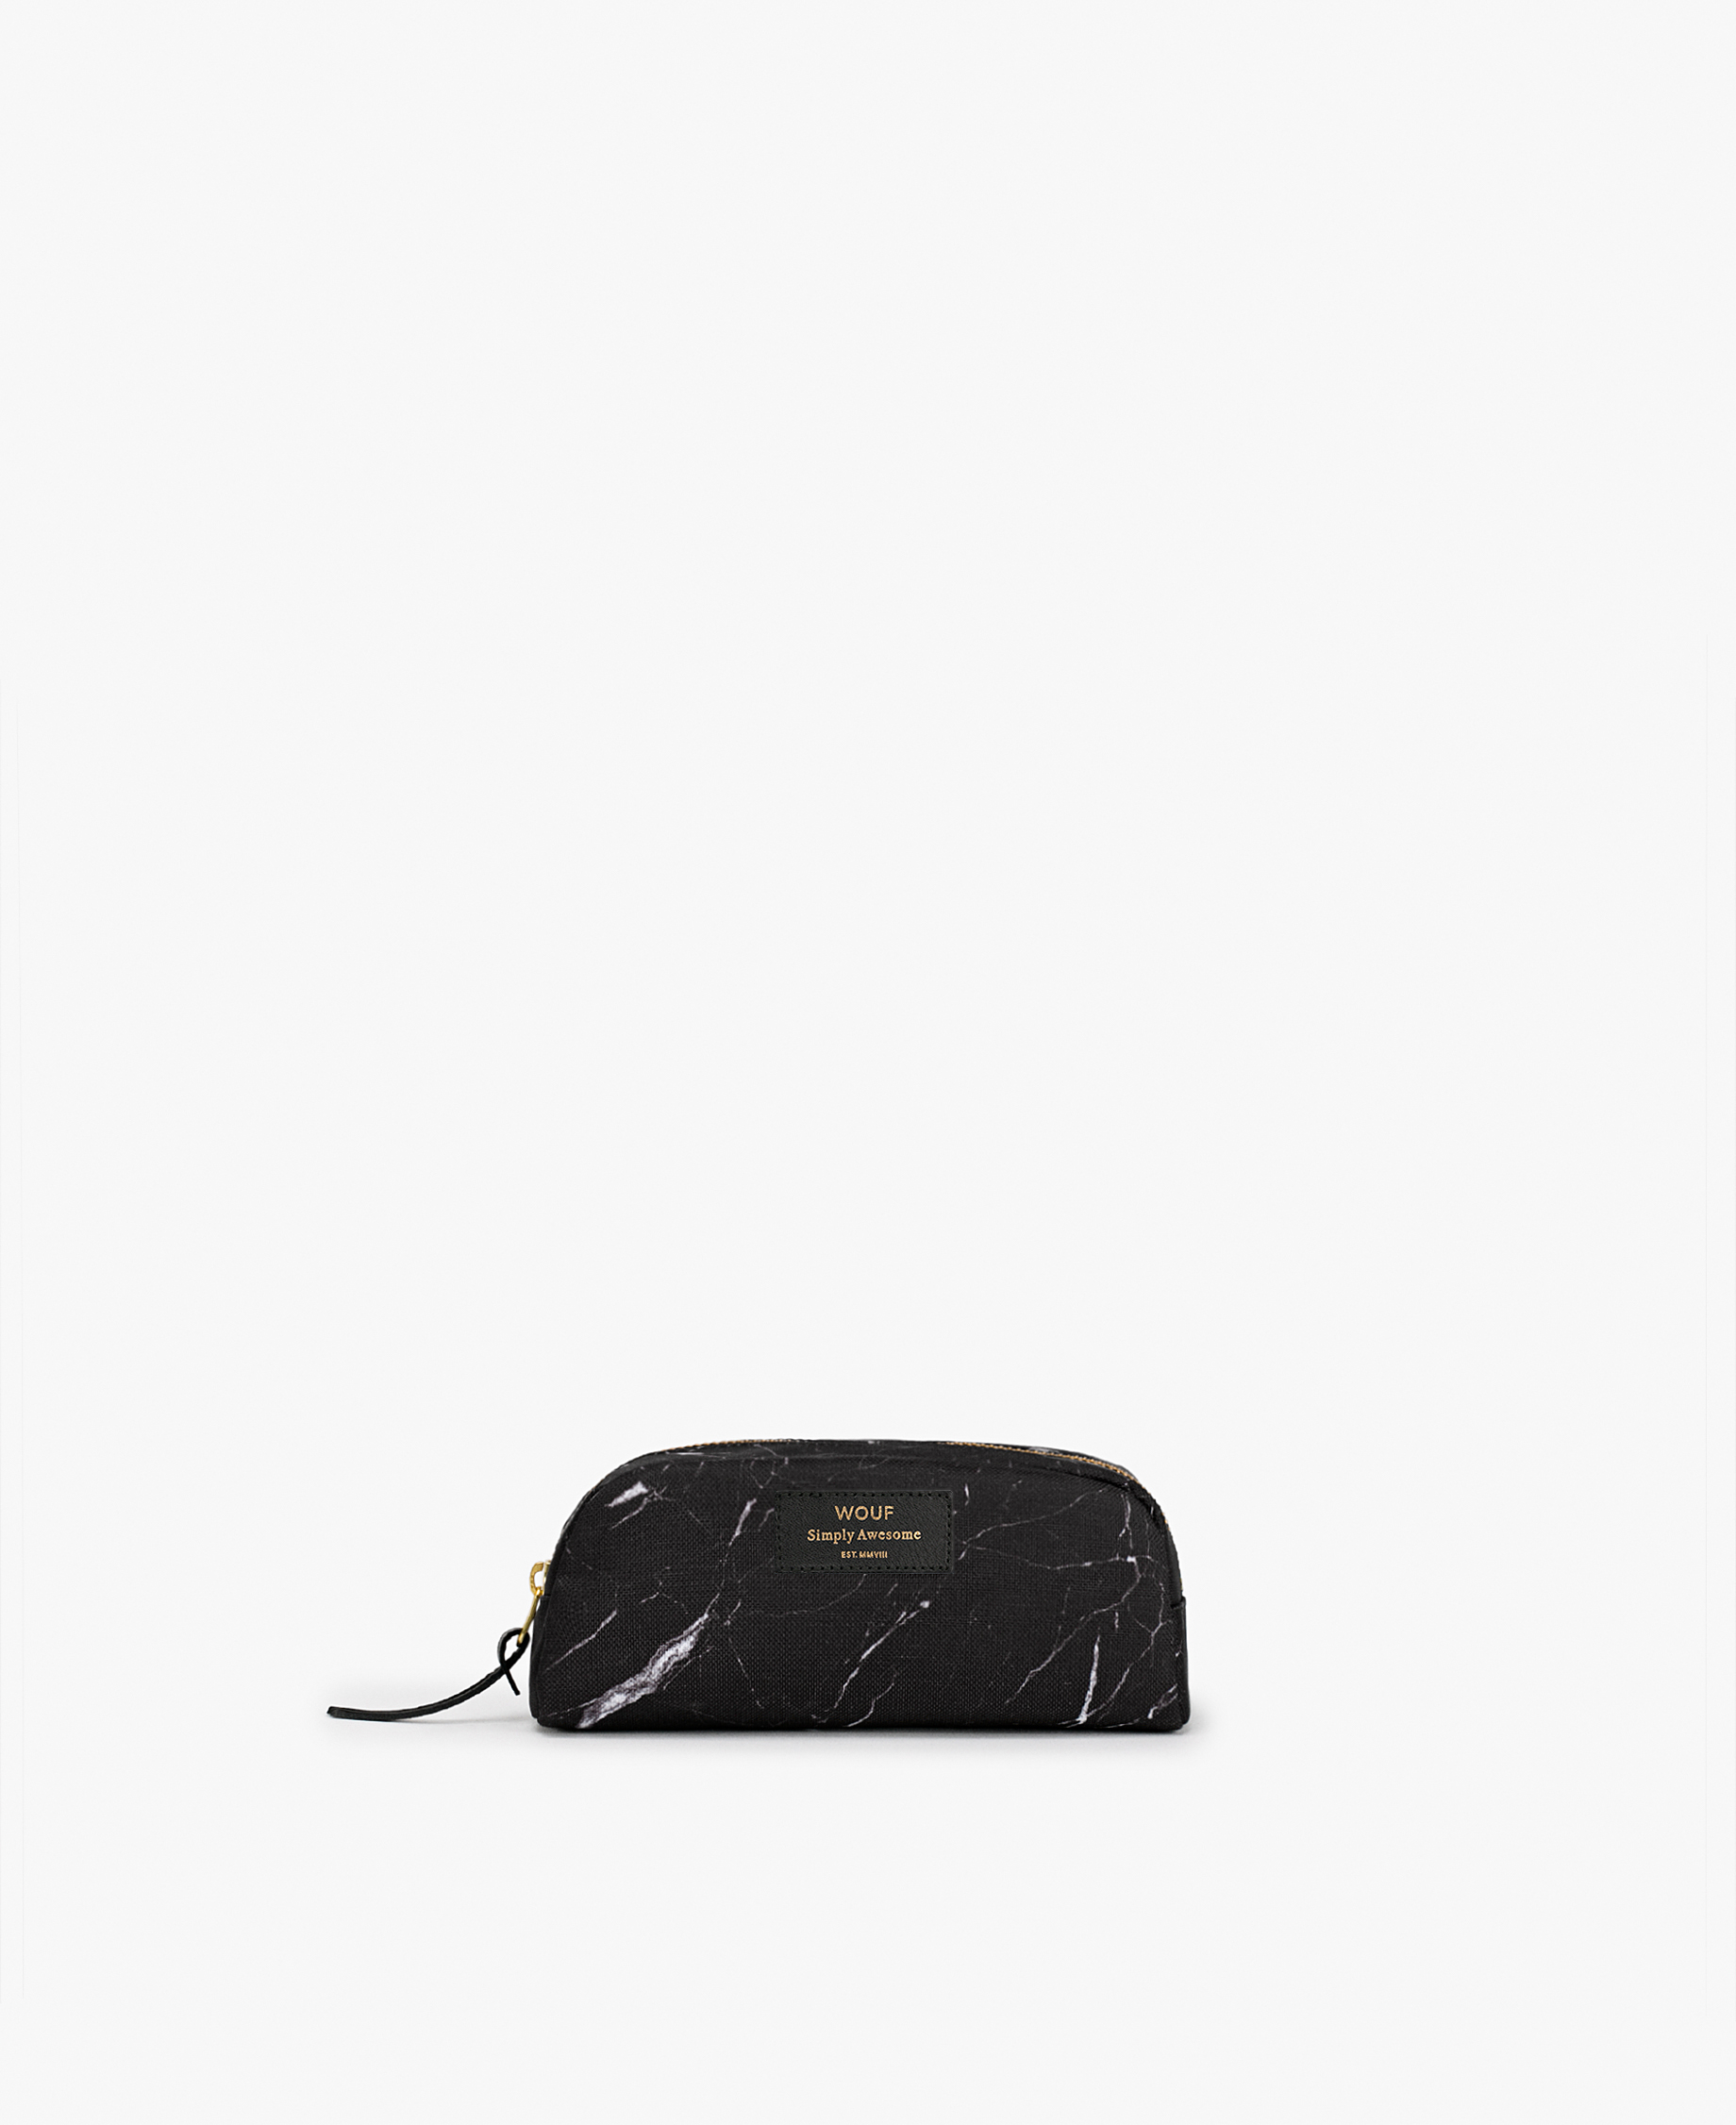 blak toiletry bag